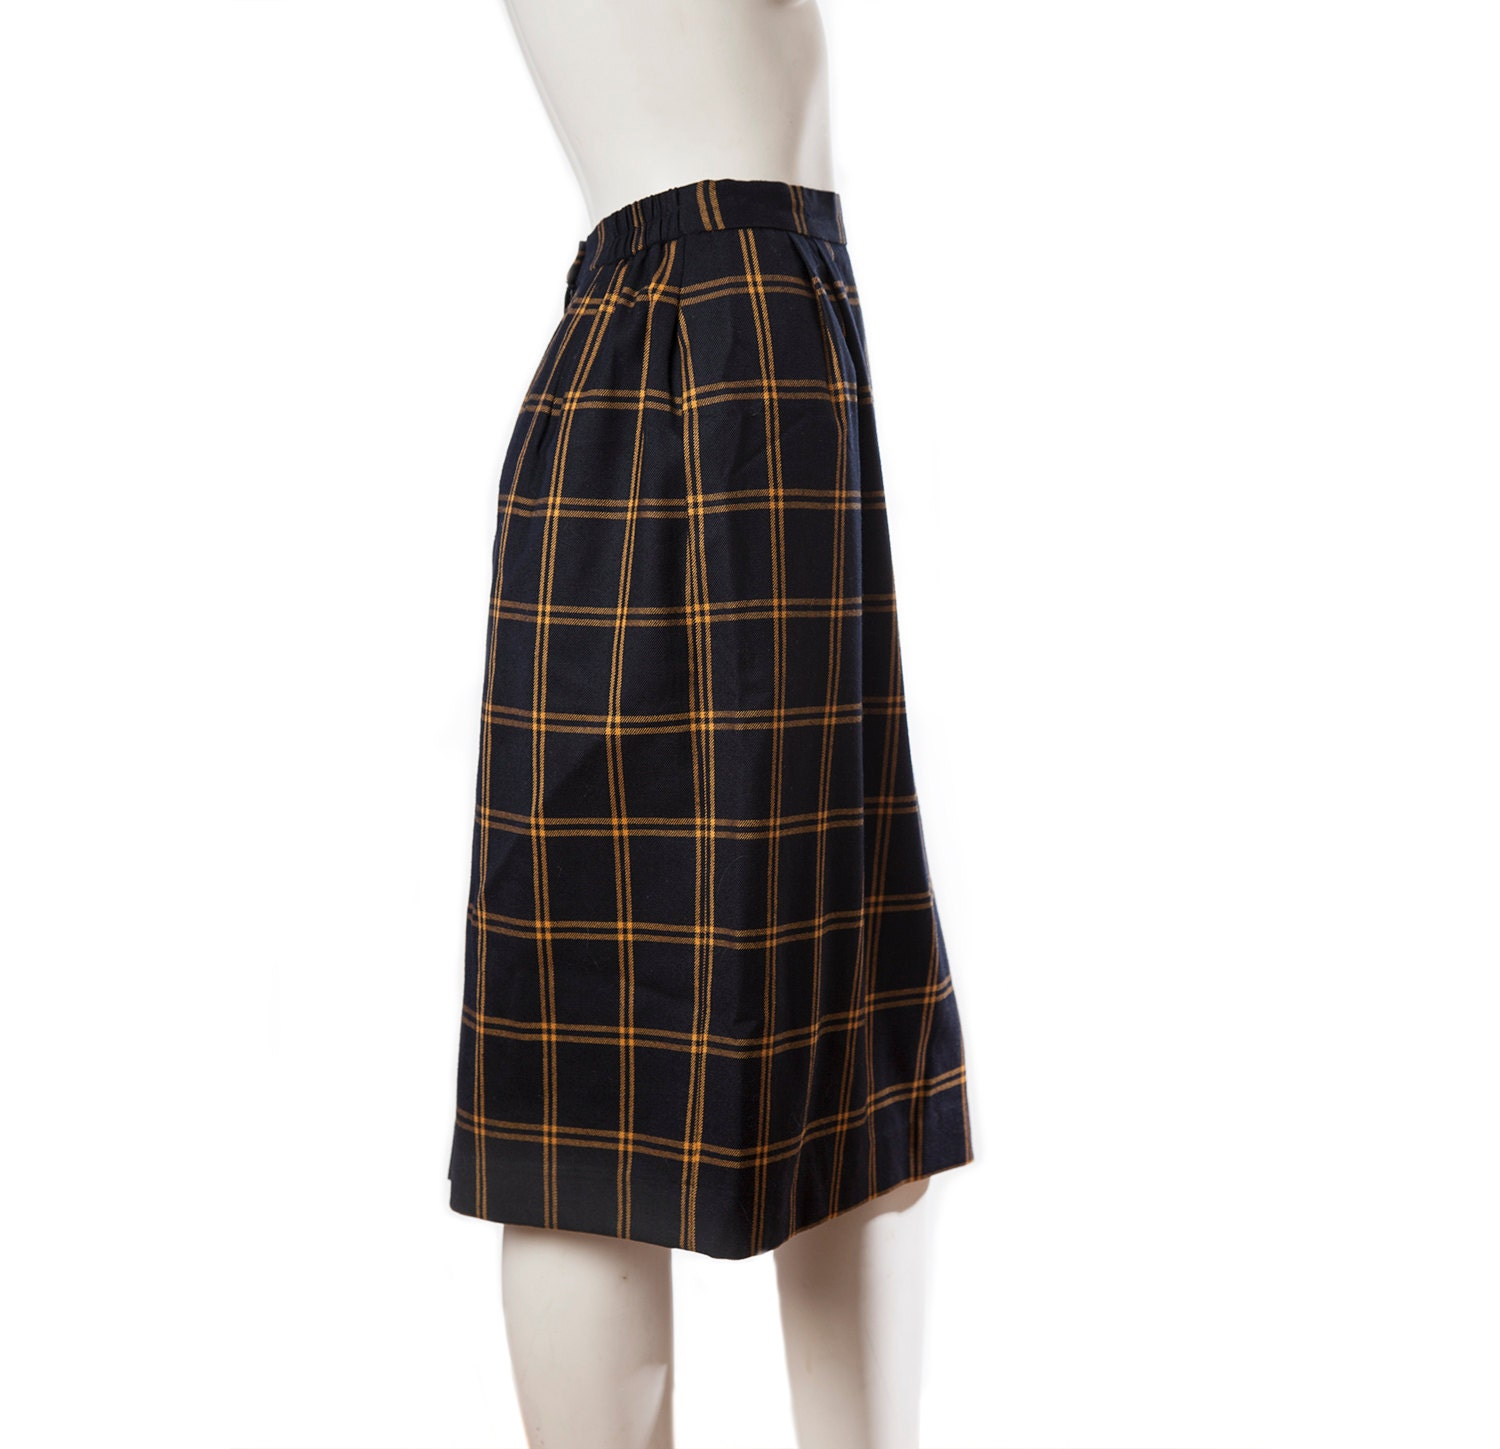 vintage plaid navy blue and gold pencil skirt by vintagefrenzy